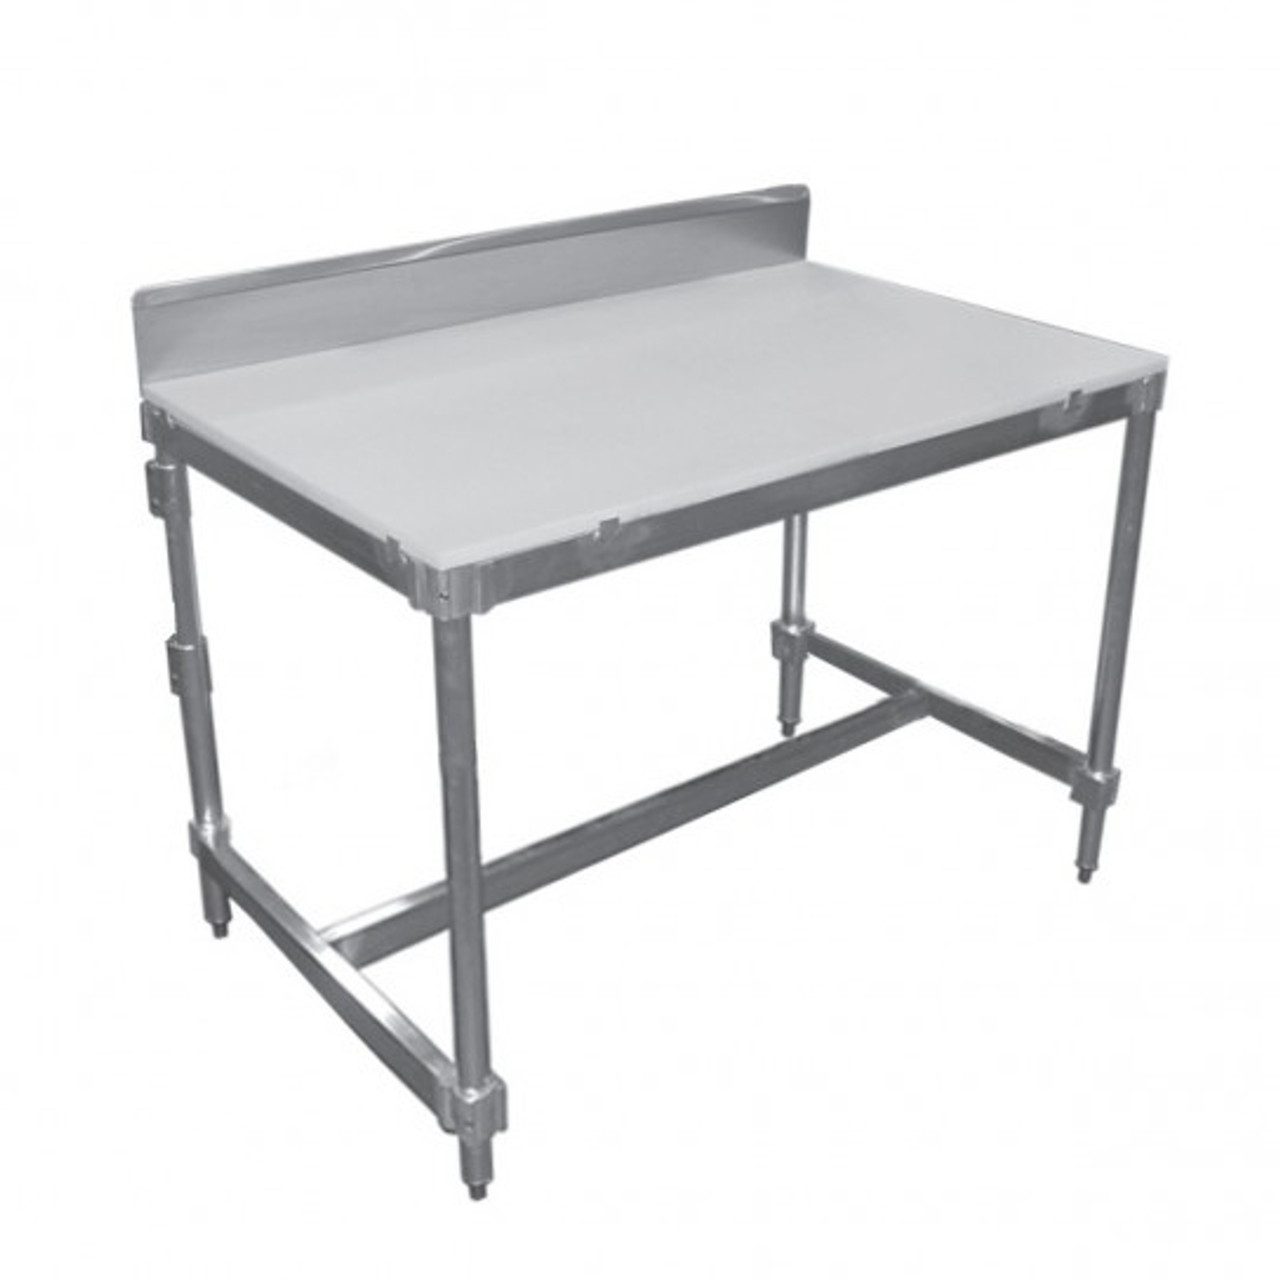 Poly Top Tables with Stainless Steel Backsplash Item length 48""